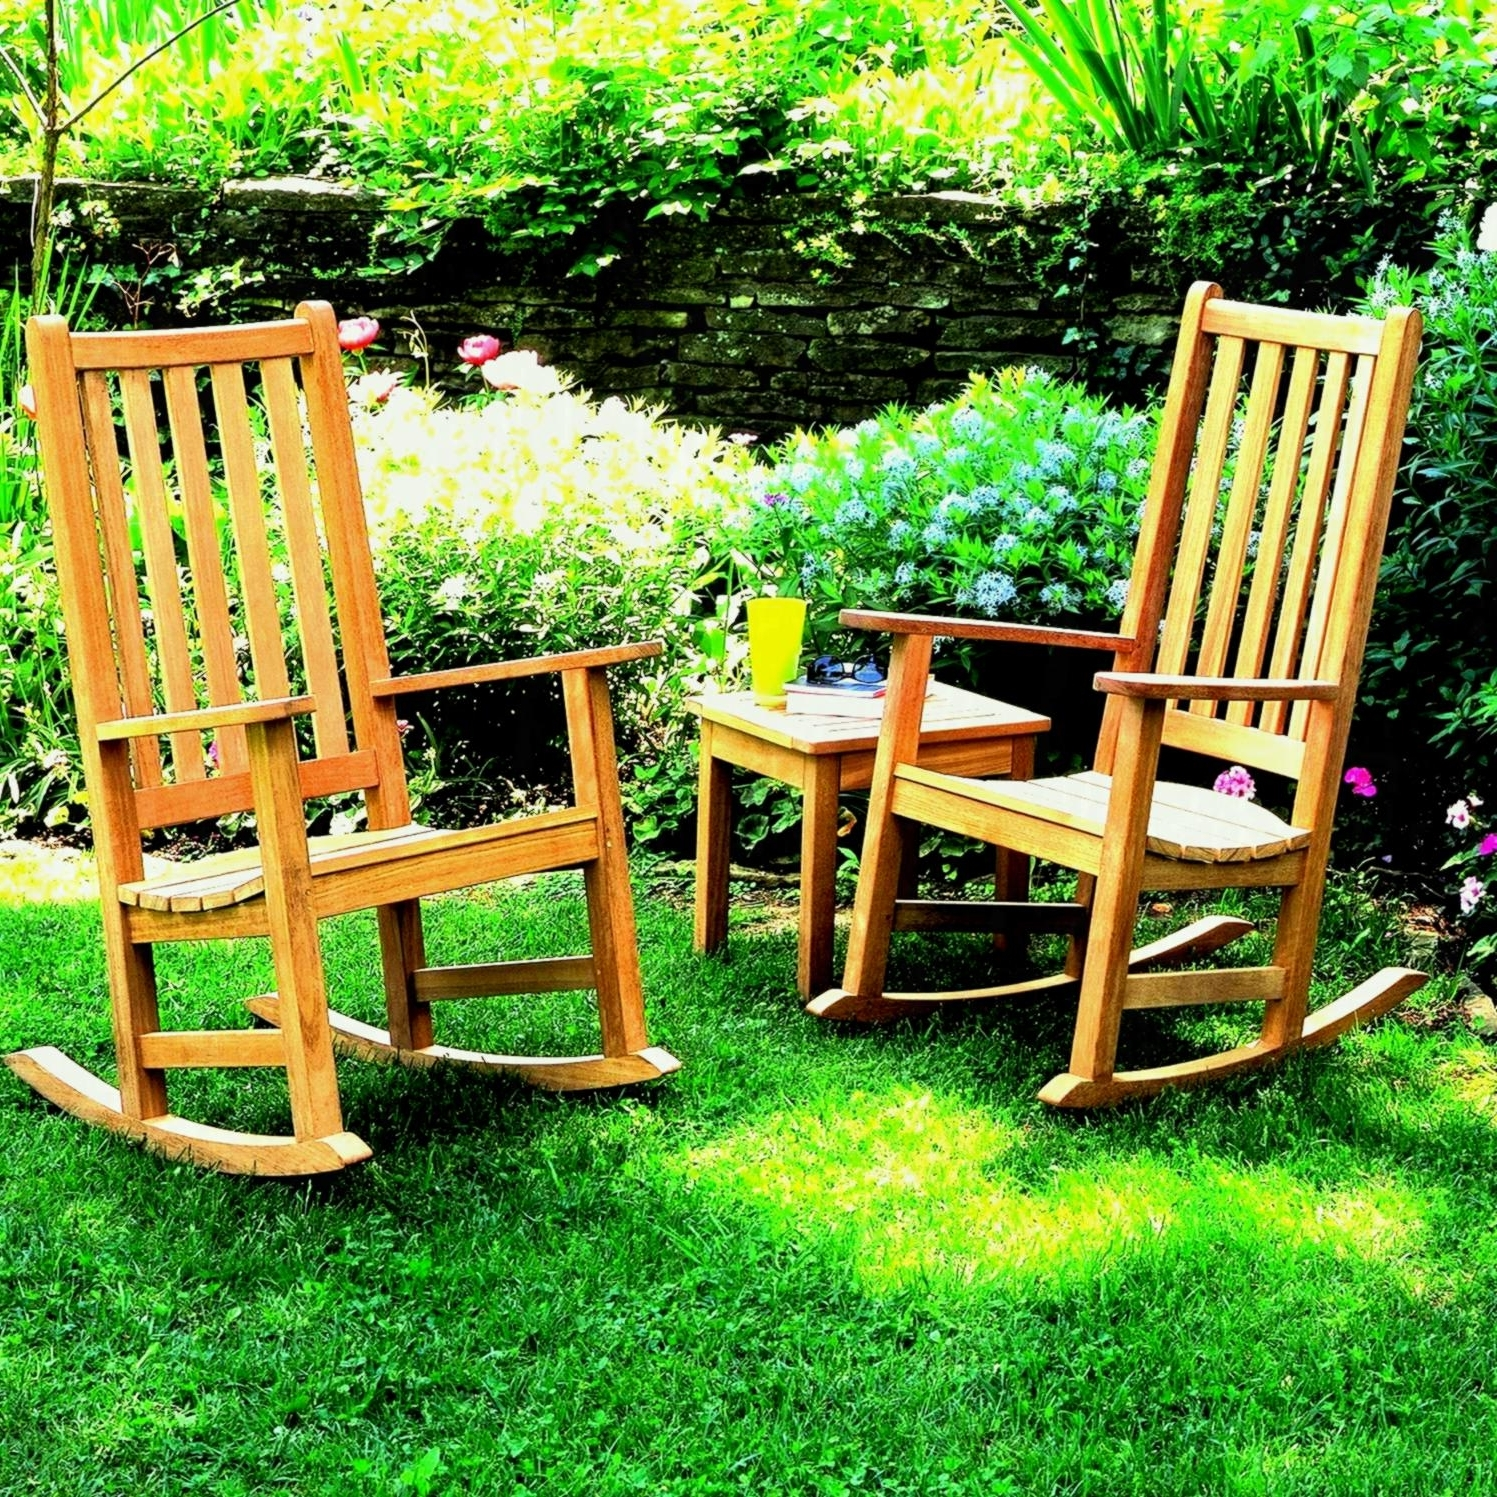 Favorite Patio Rocking Chairs Outdoor Furniture Garden Lawn Back To Your Old Inside Rocking Chairs For Garden (View 4 of 20)